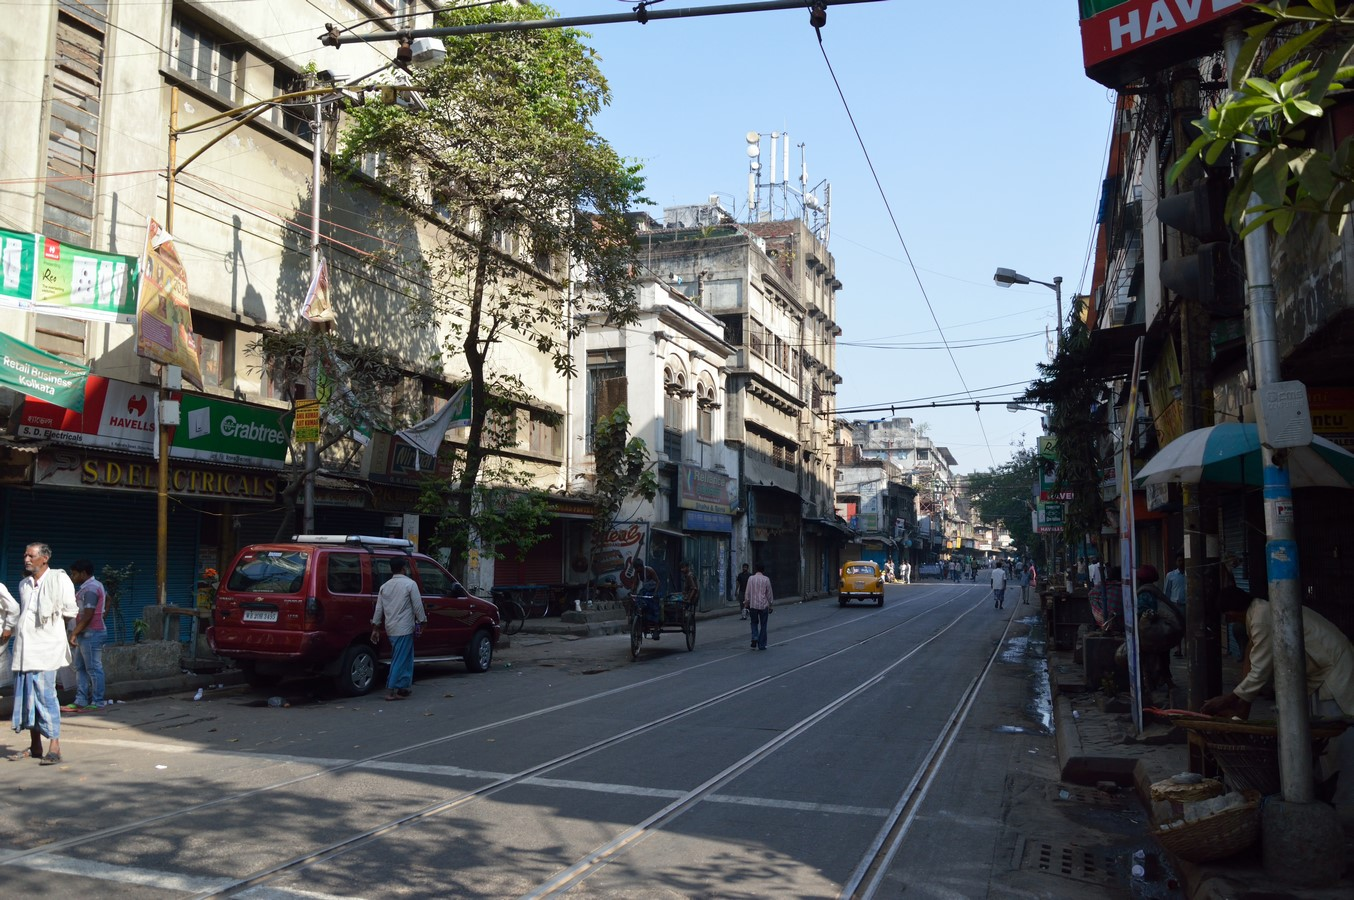 Walking through the streets of Kolkata - A visual description of Street architecture of the city - Sheet7